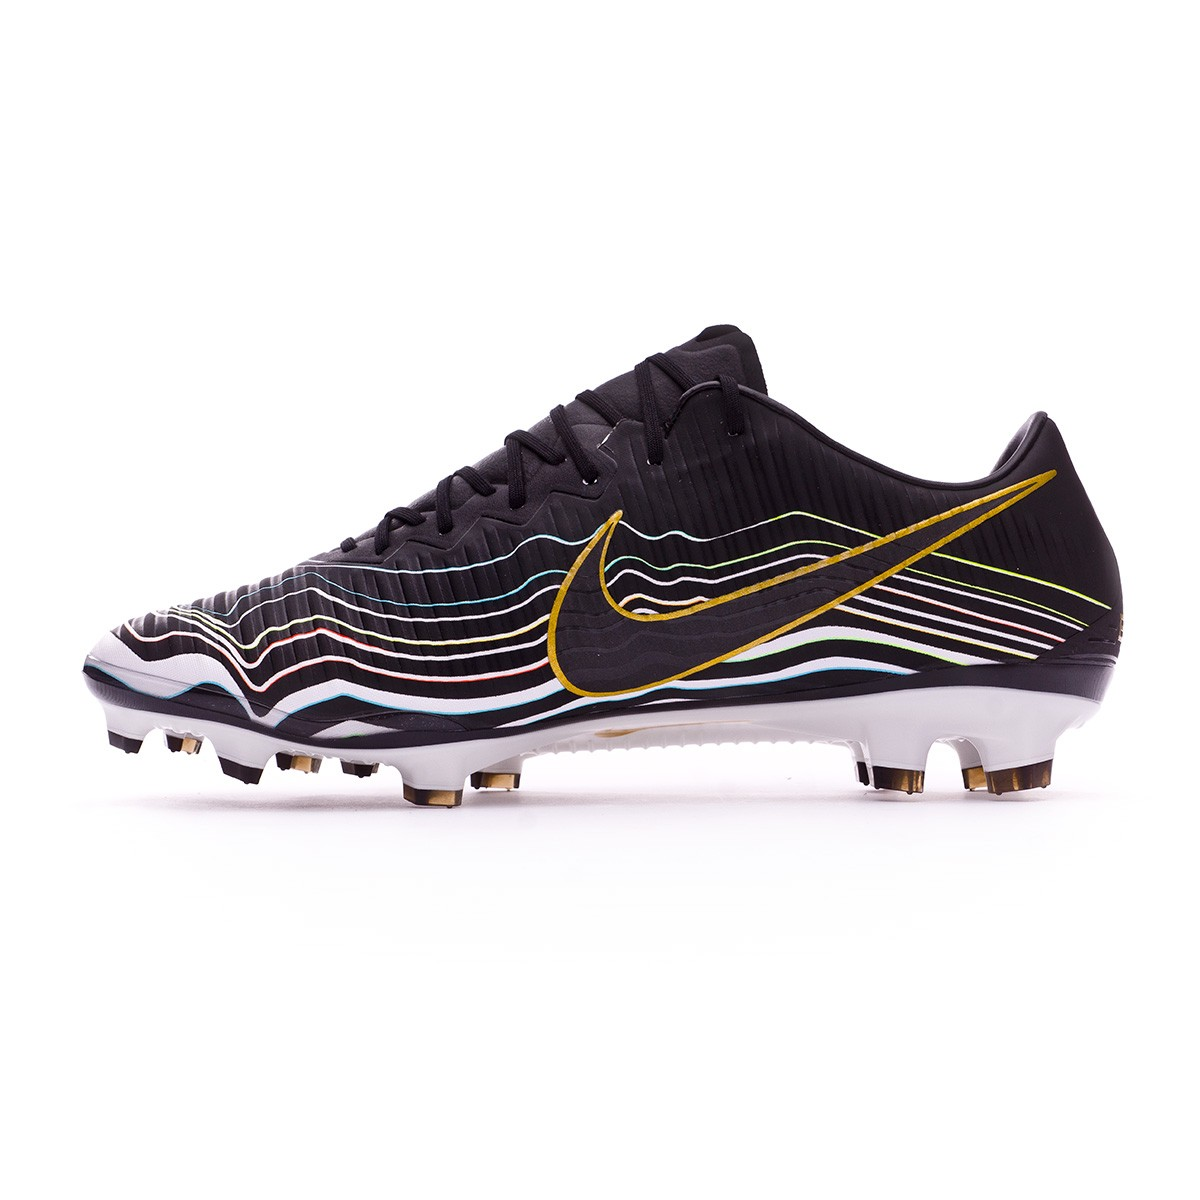 06ccc9d53472 Football Boots Nike Mercurial Vapor XI ACC BHM Equality FG Black-Gamma  blue-Metallic gold - Football store Fútbol Emotion